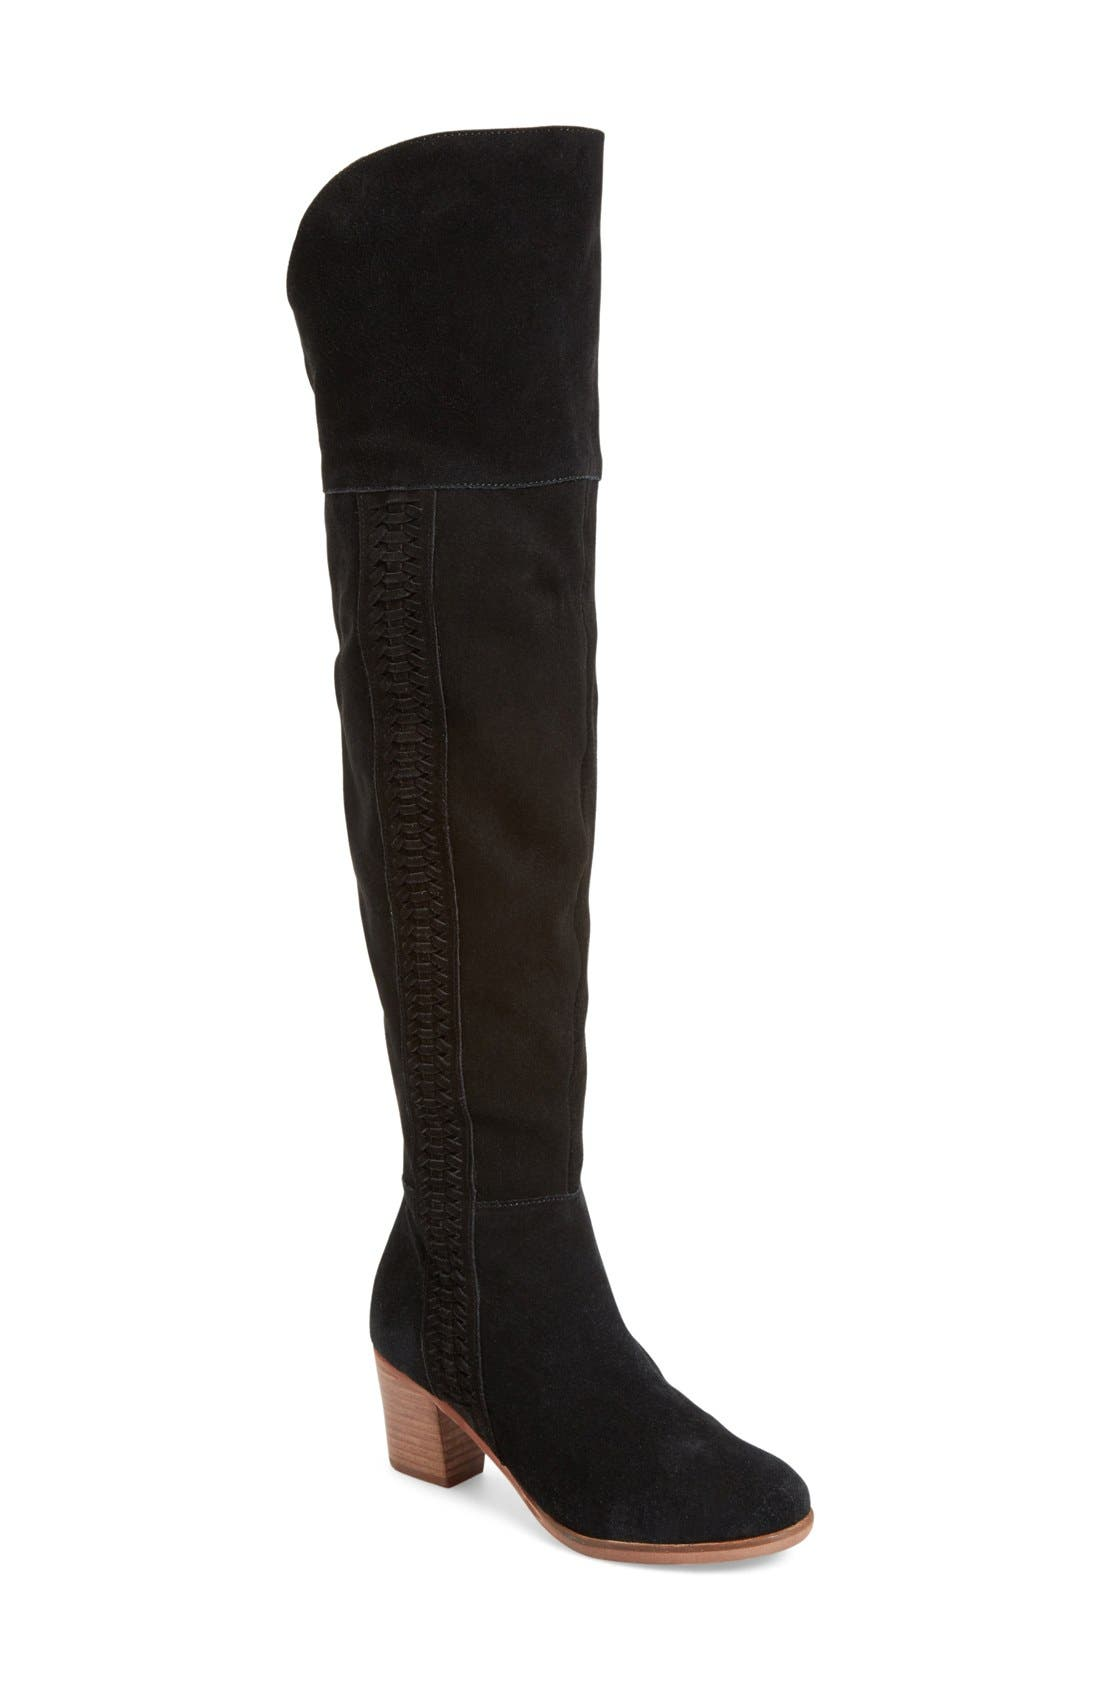 Main Image - Matisse Muse Tall Boot (Women) (Narrow Calf)